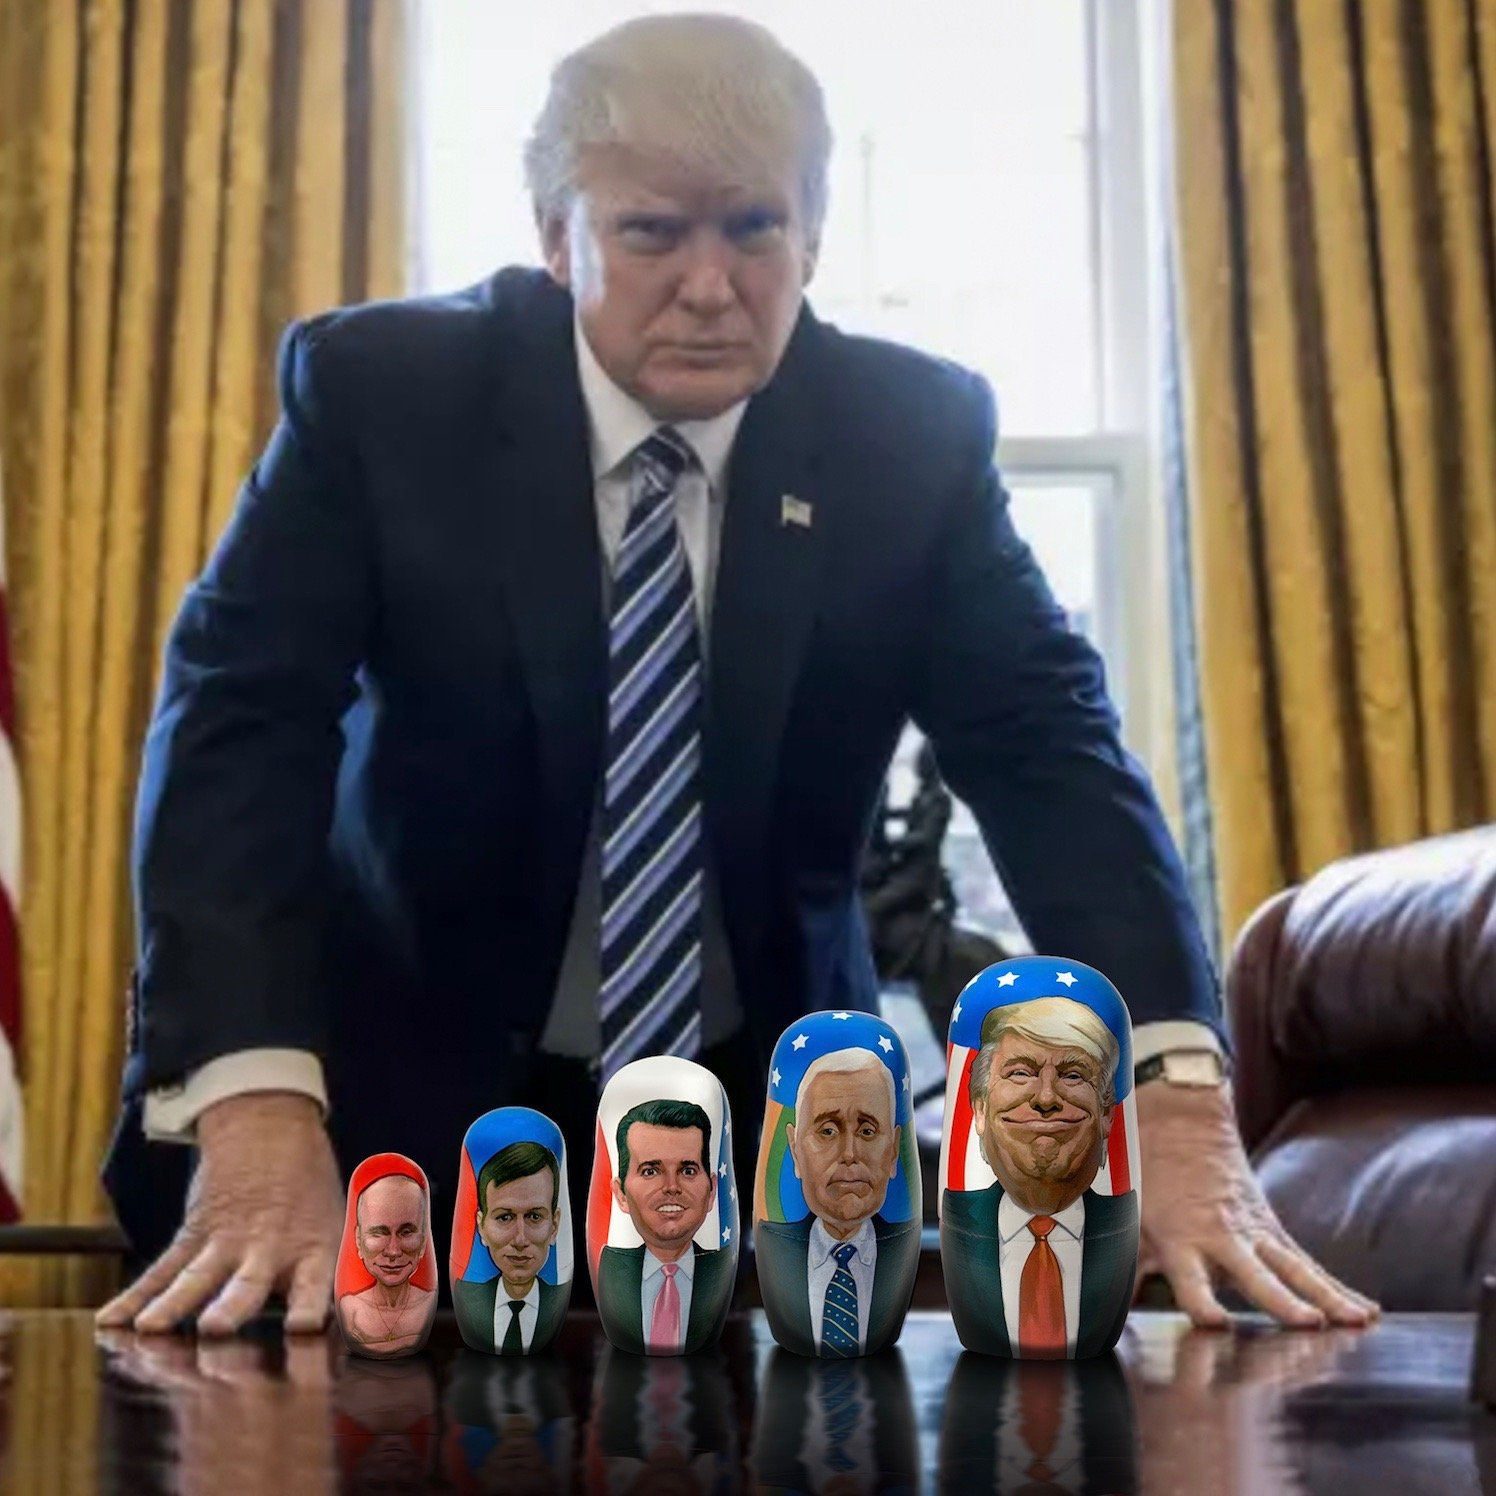 Concentric Surprise Trump & Putin Russian Matryoshka Nesting Doll - Kickstarter Famous! 6'' Tall - 5 piece set